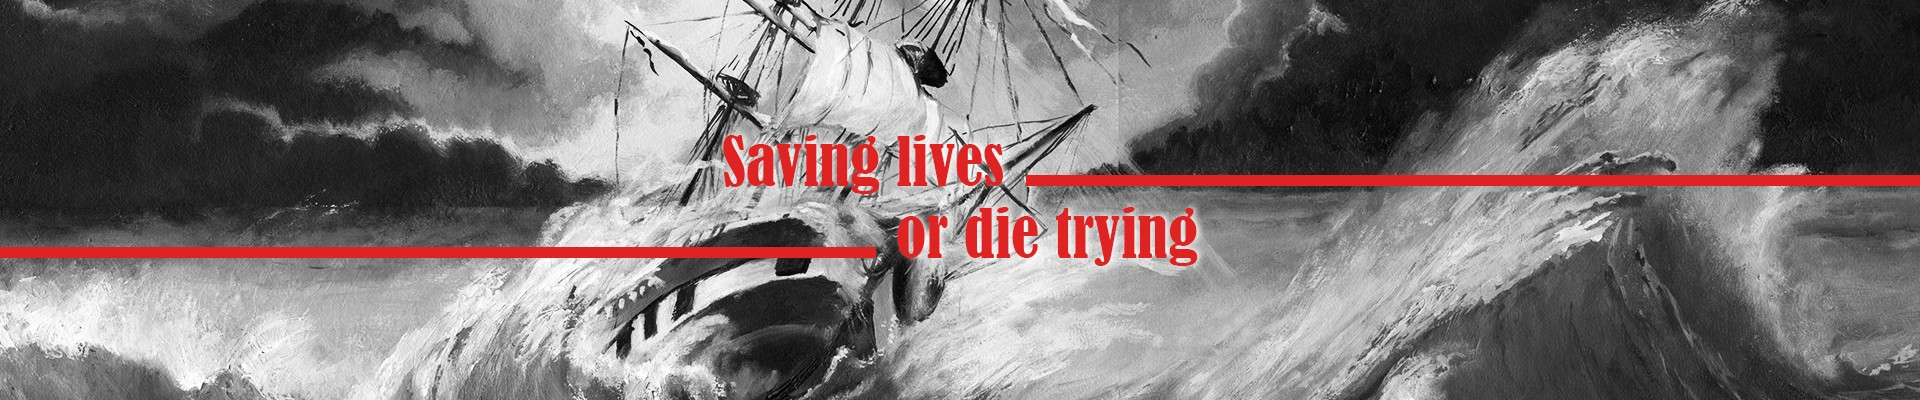 saving-lives-or-die-trying-old-passenger-ship-during-storm-at-sea